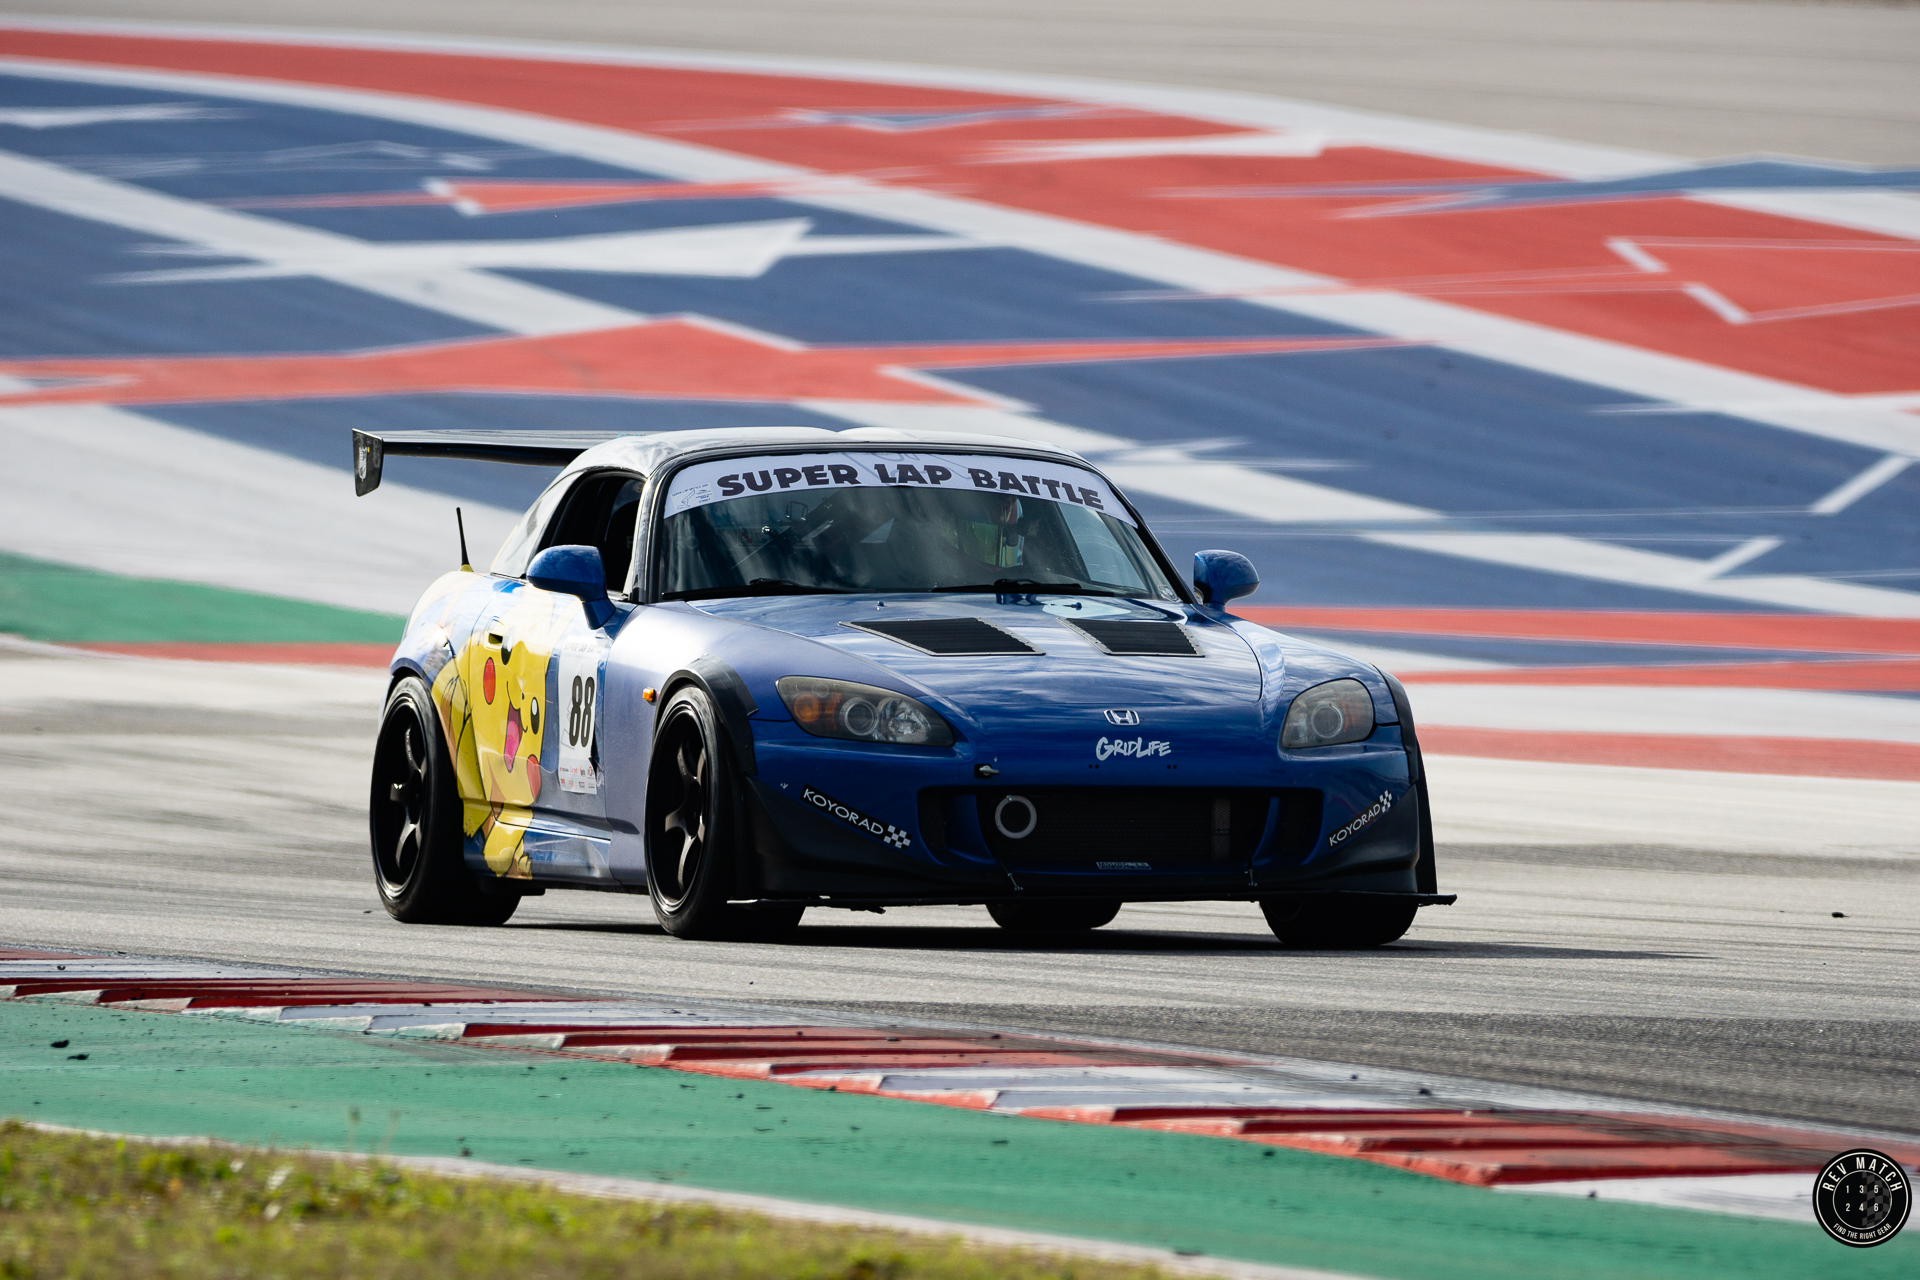 Super Lap Battle COTA Rev Match Media-338.jpg